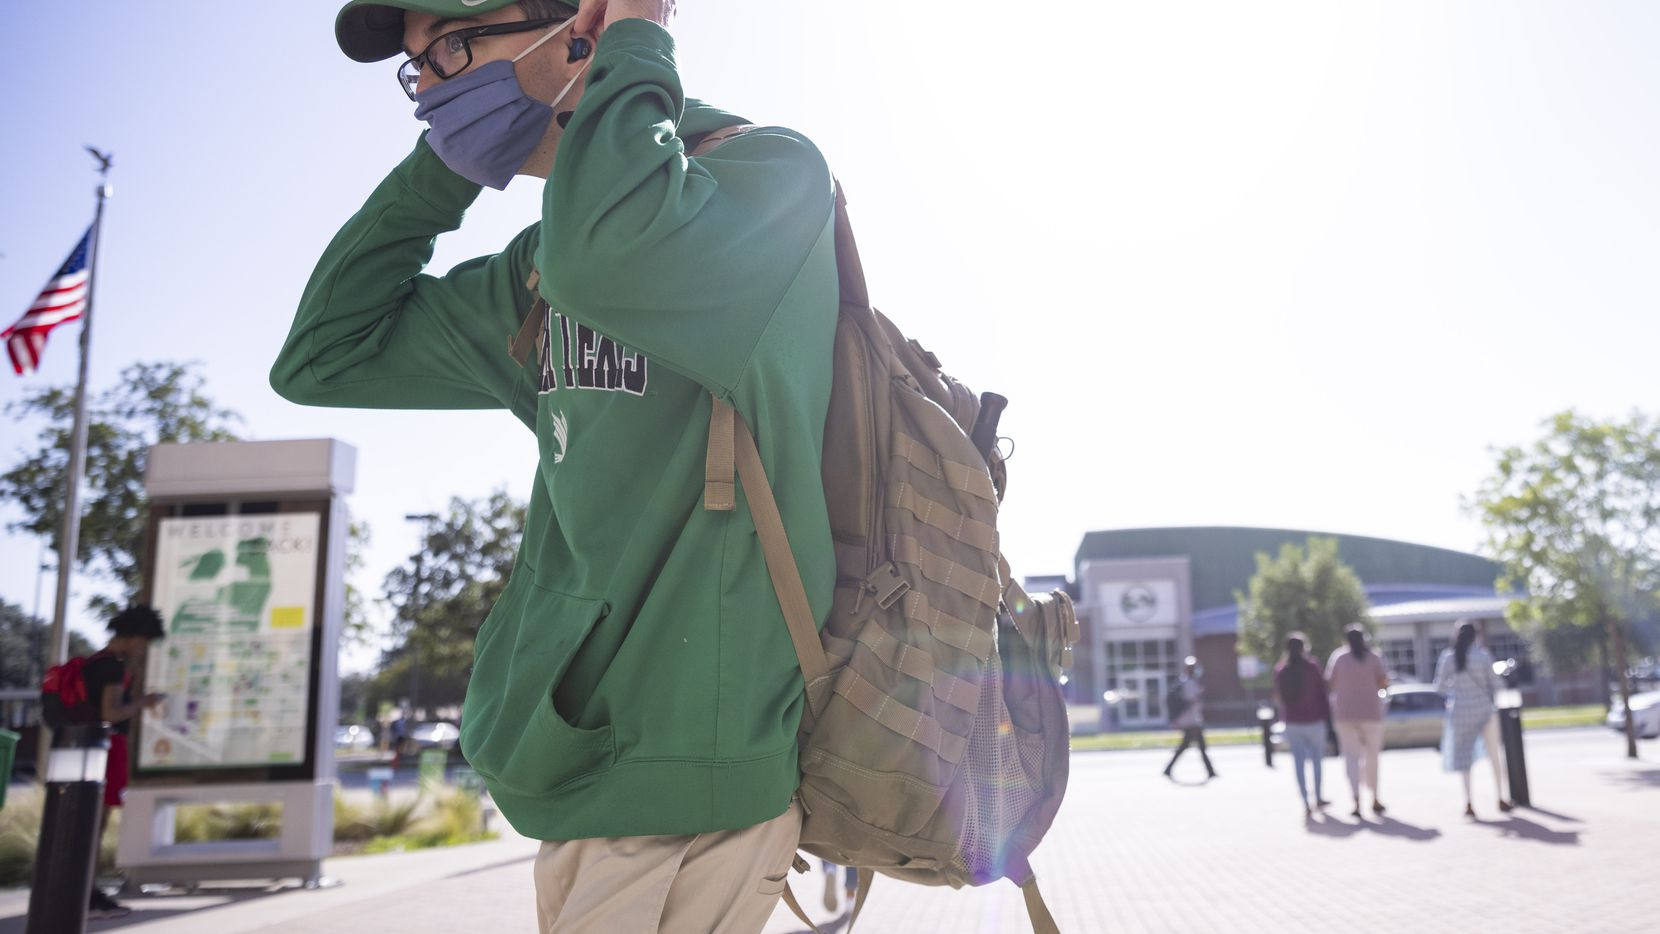 COVID-19 disrupted students' plans for college as schools suddenly shut down and classes were moved online. Higher education leaders nationwide worried about the harsh impact enrollment trends would have if they continued downward, but Texas universities surpassed their own expectations.